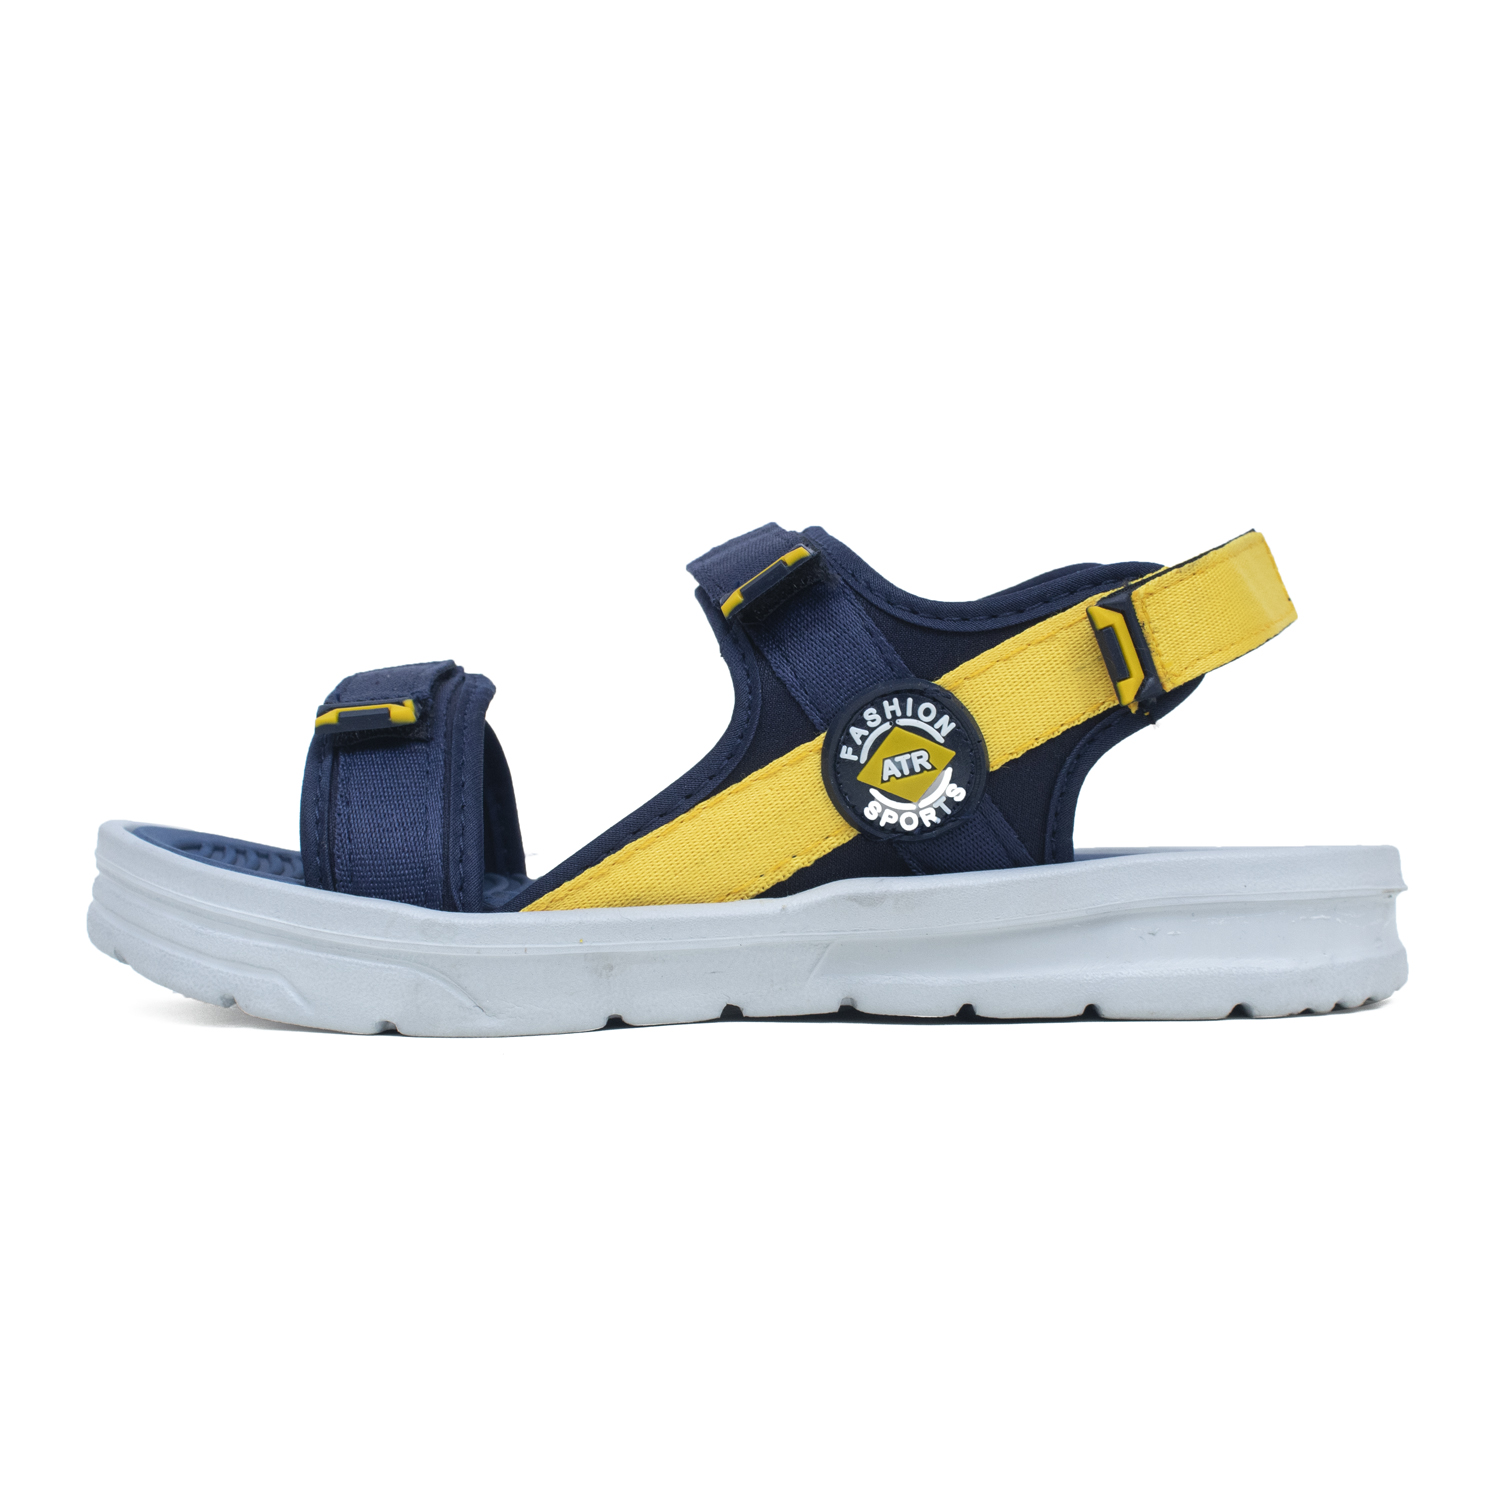 Foot Trends Vento--1 BK-RED 6-9 Sandal For Men Vento-1-BK-RED-6-9 (Yellow, 6-9, 4 PAIR)